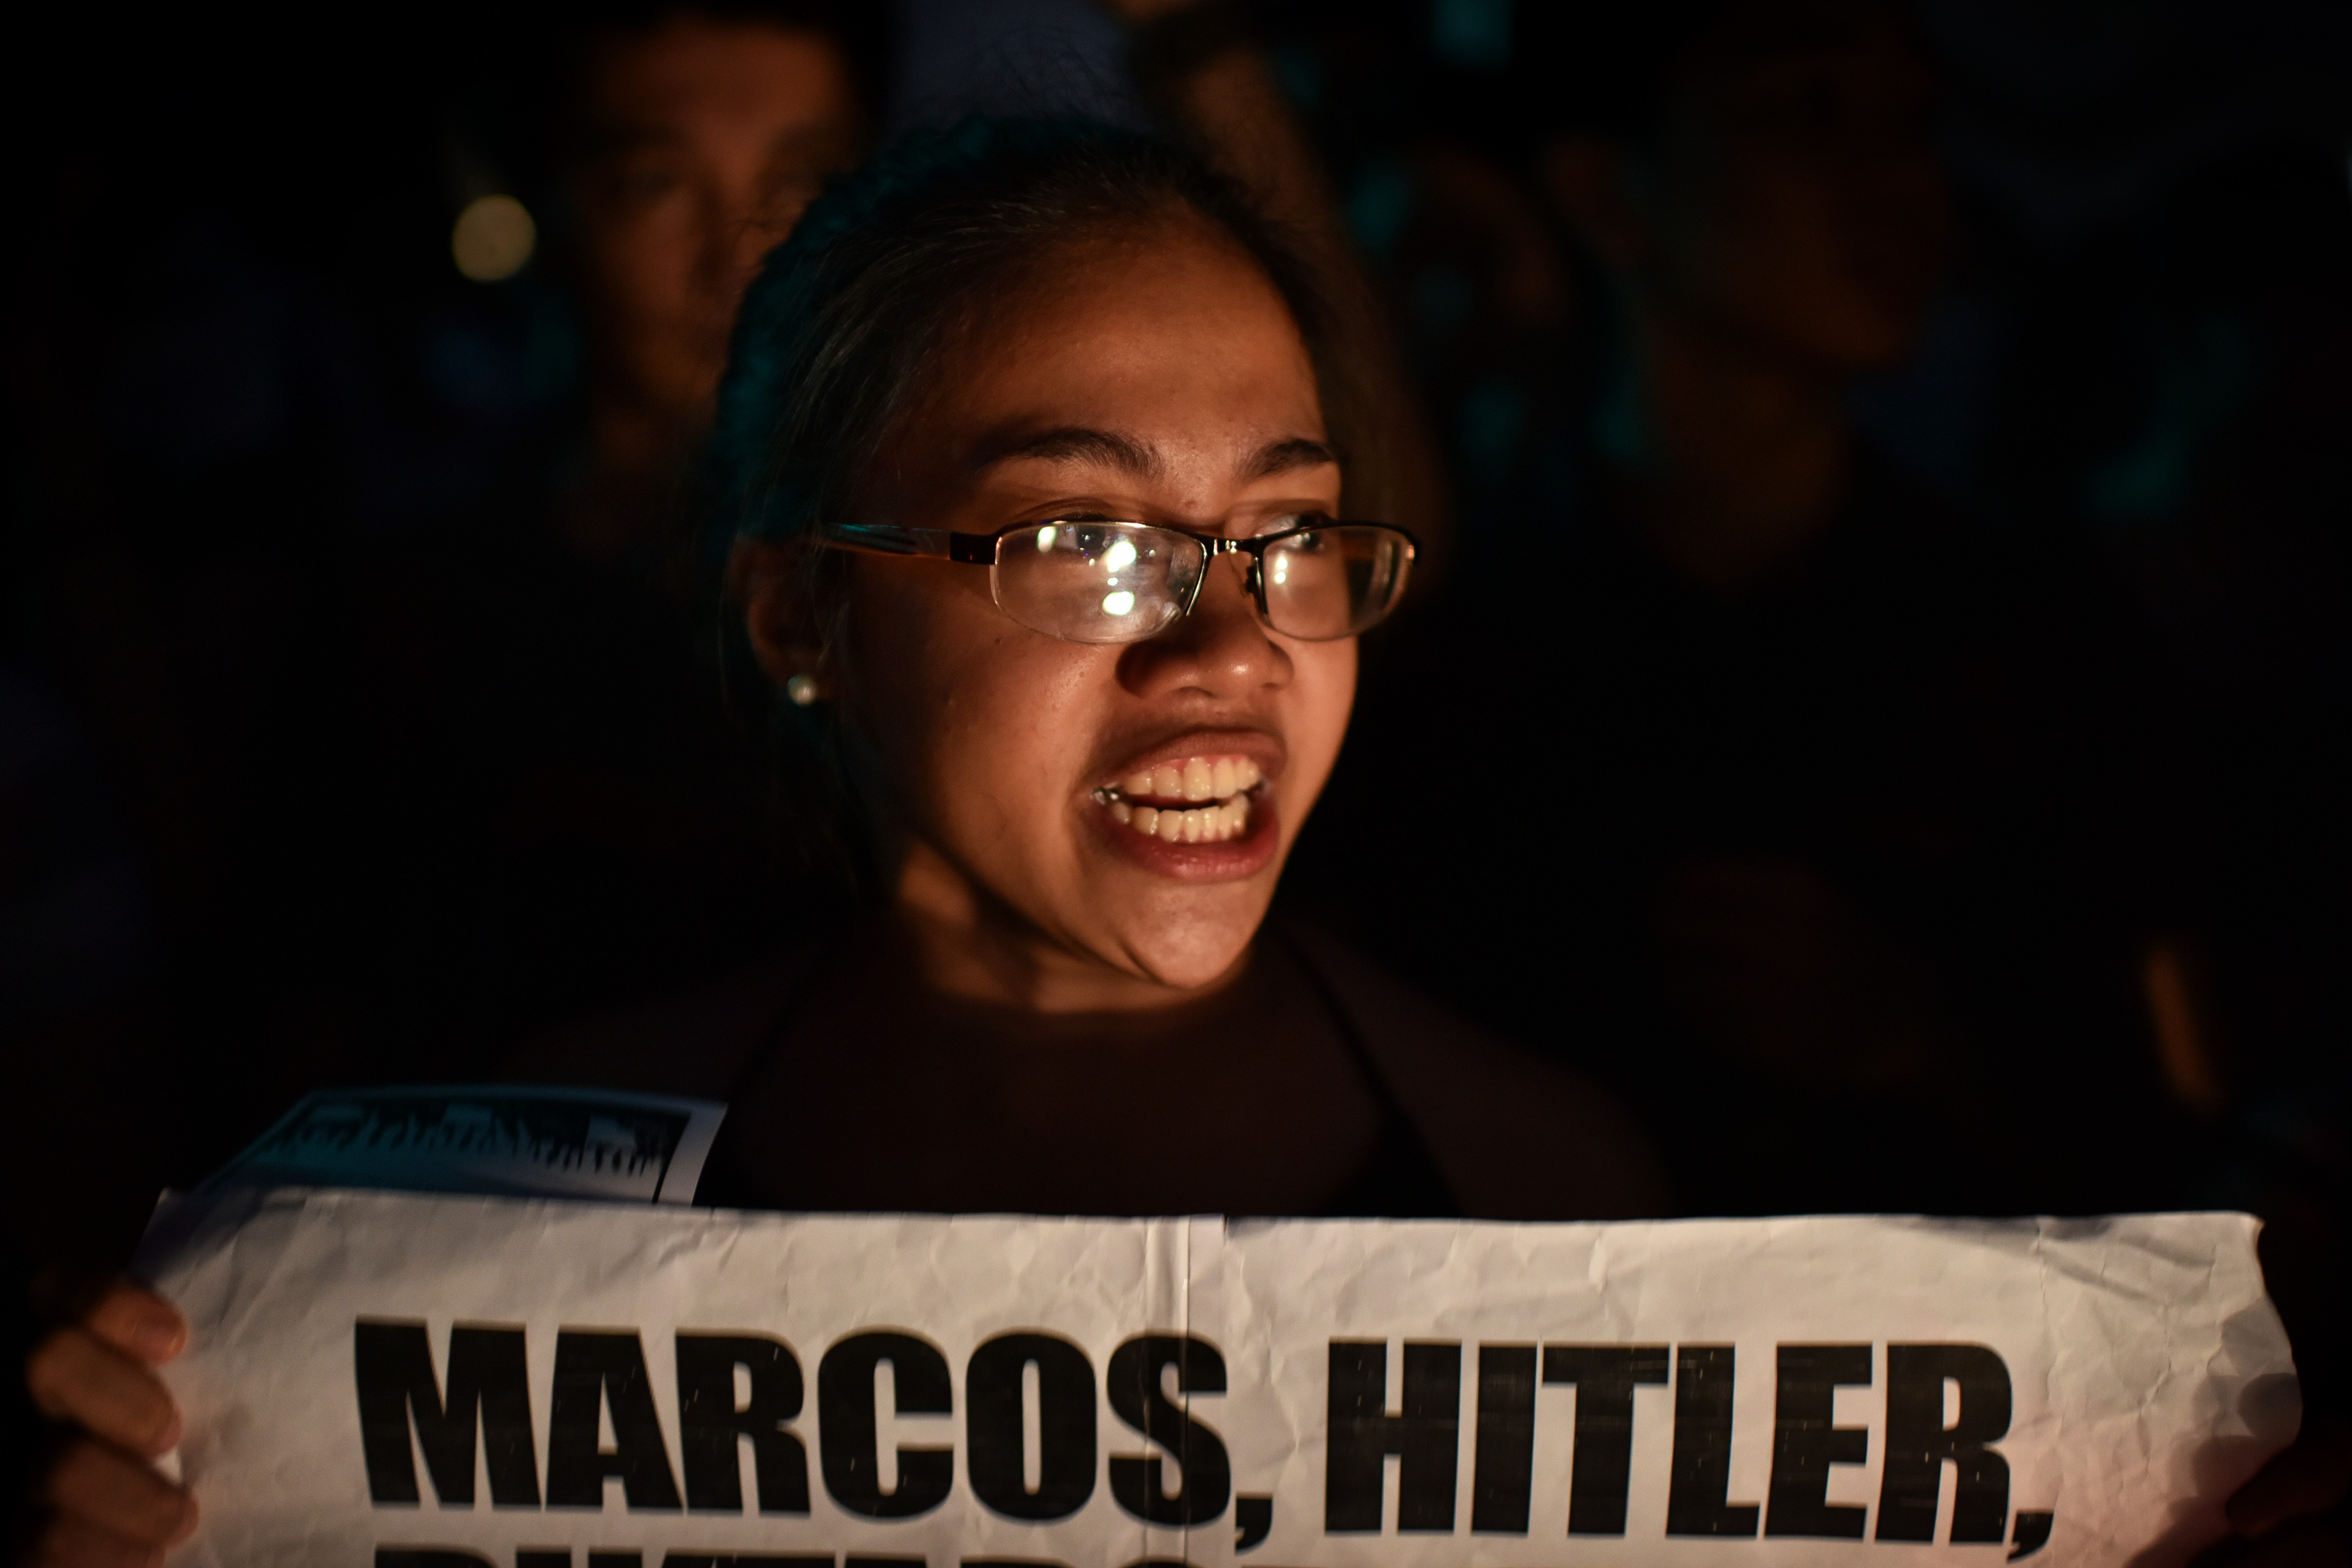 Students and anti-Marcos activists take to the streets of Manila to protest the hero's burial accorded to former Philippine dictator Ferdinand Marcos on Nov. 18, 2016.